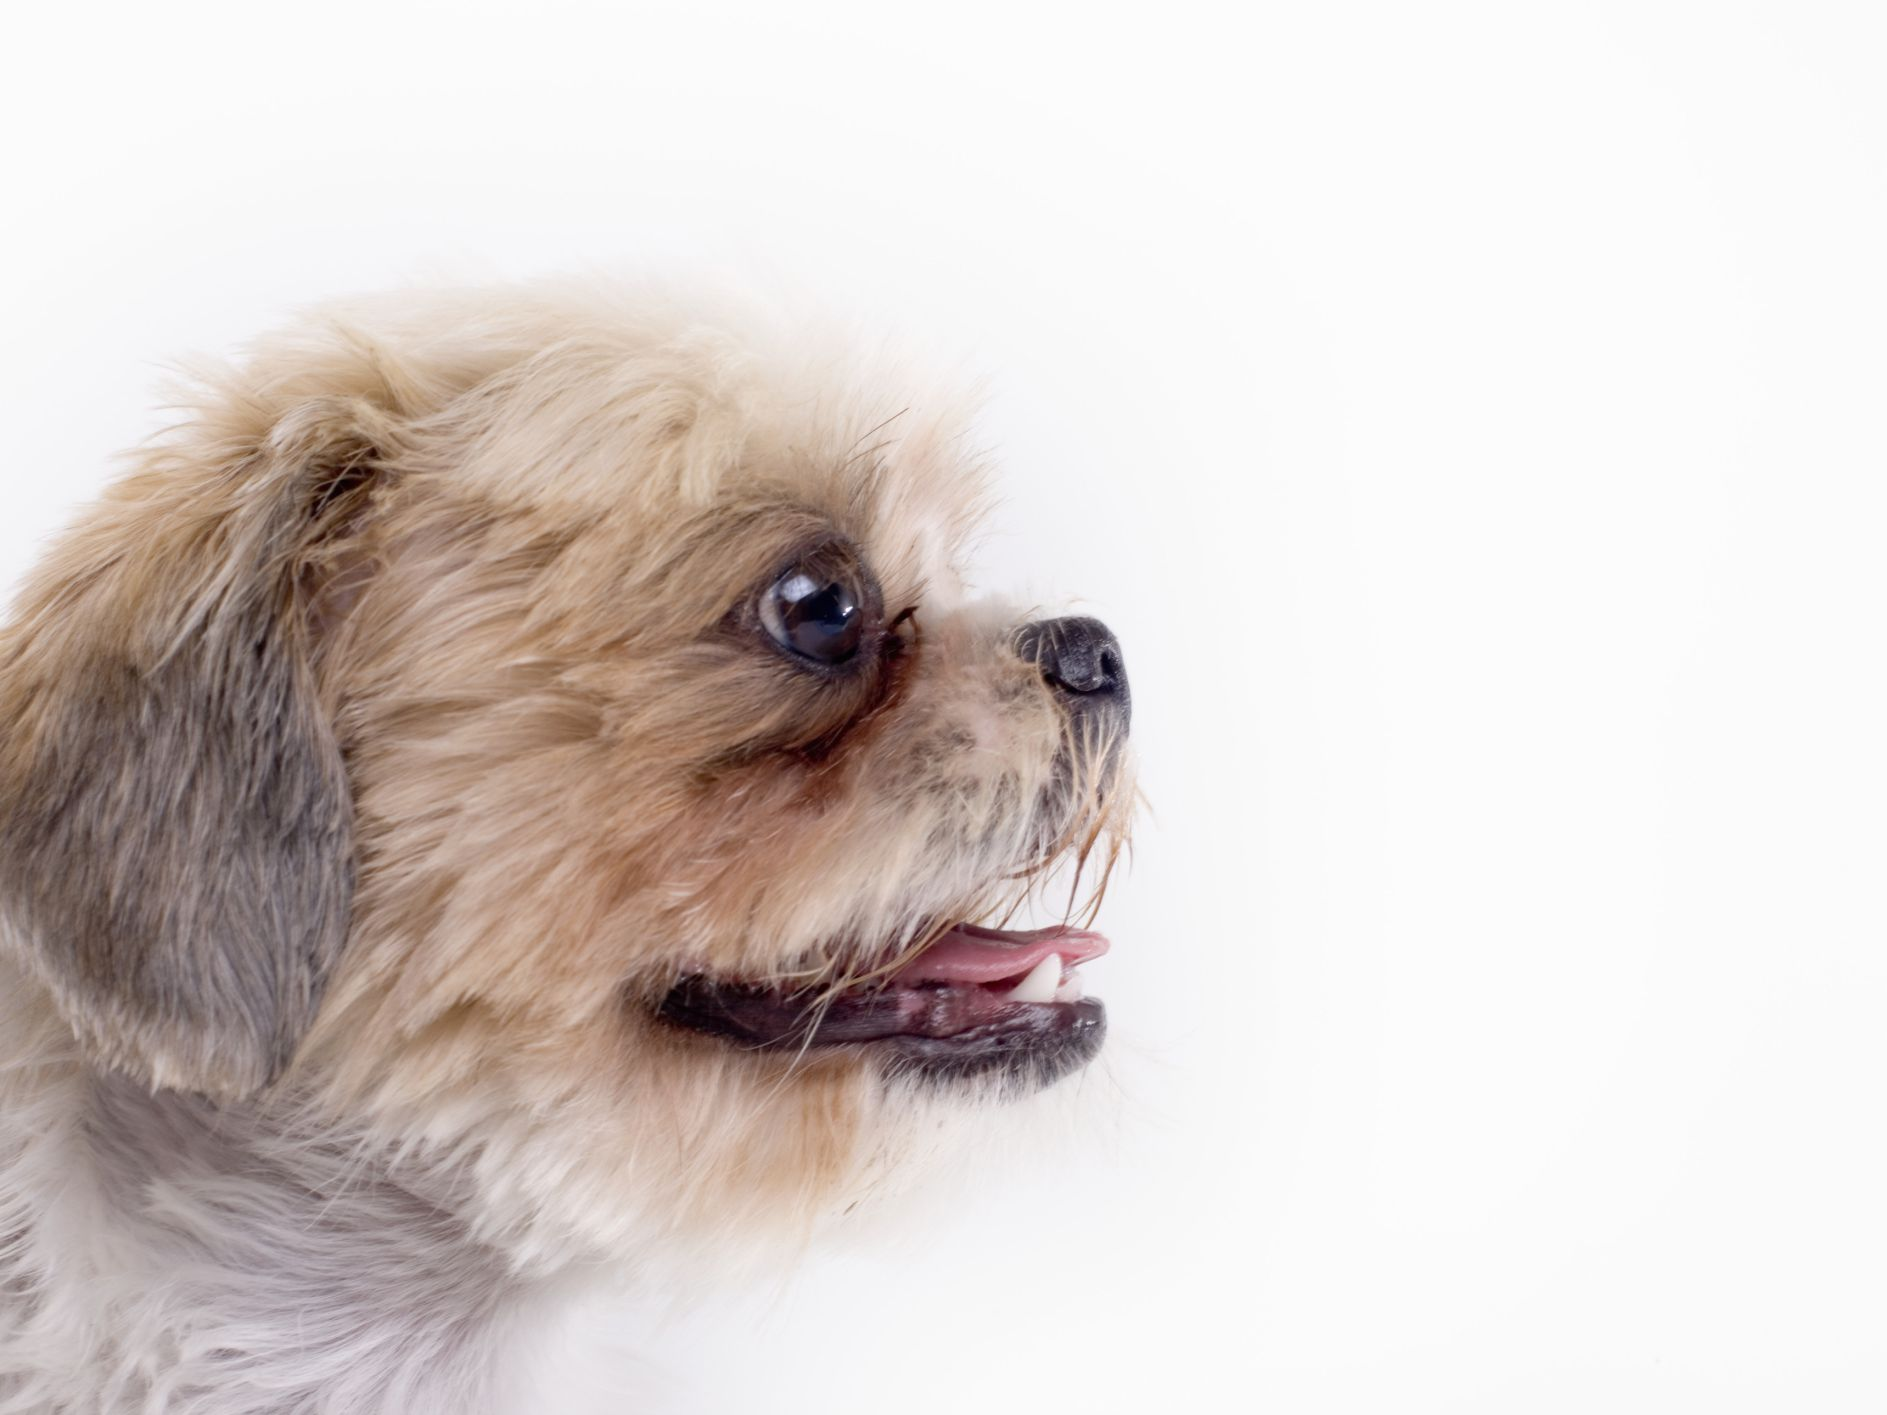 What to Do If Your Dog Has Excessive Tearing and Eye Drainage